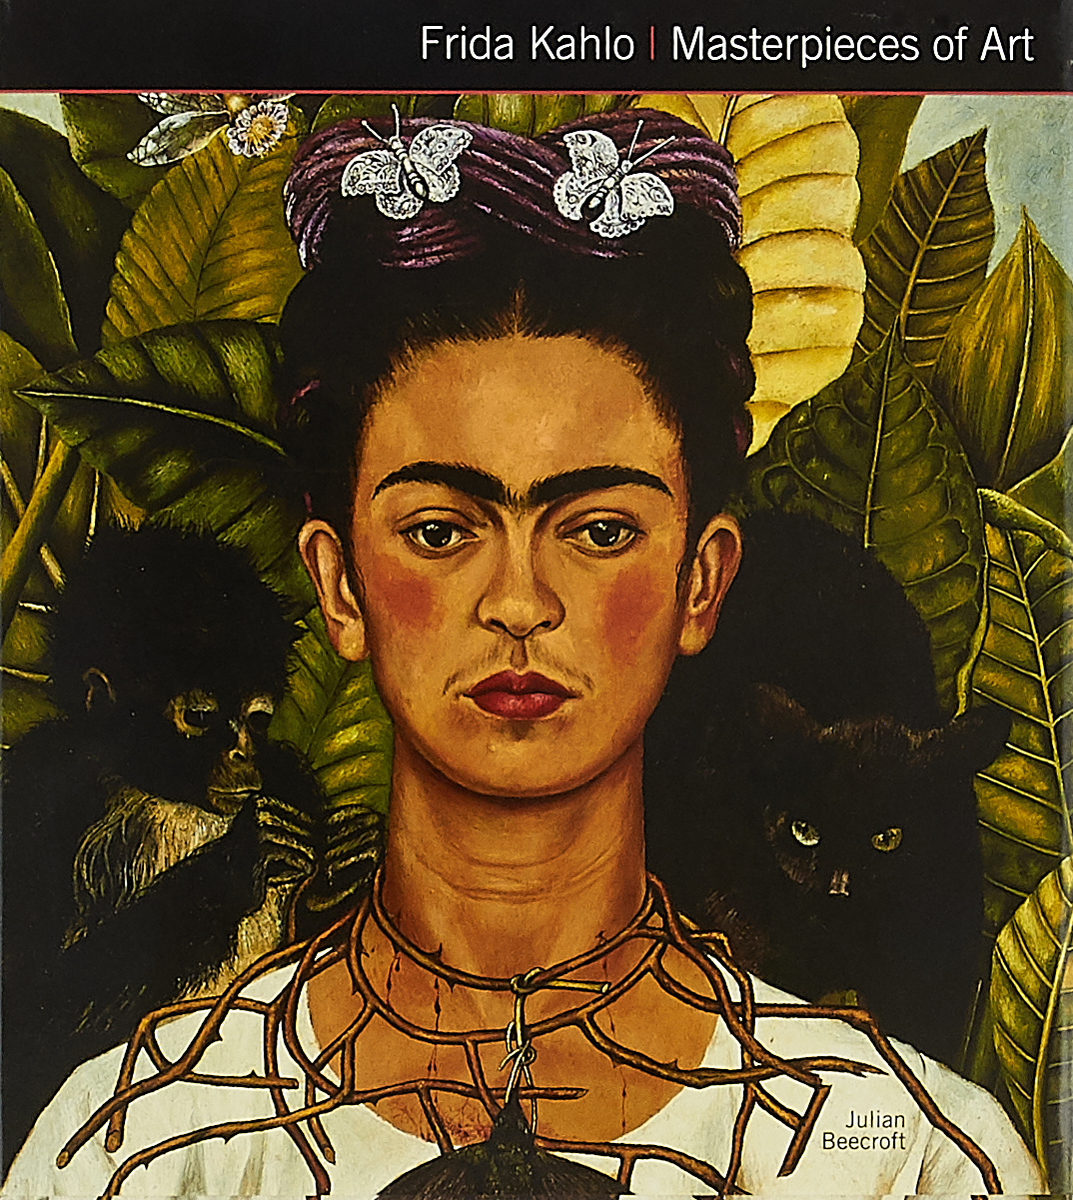 Frida Kahlo / Masterpieces of Art 1000 masterpieces of decorative art